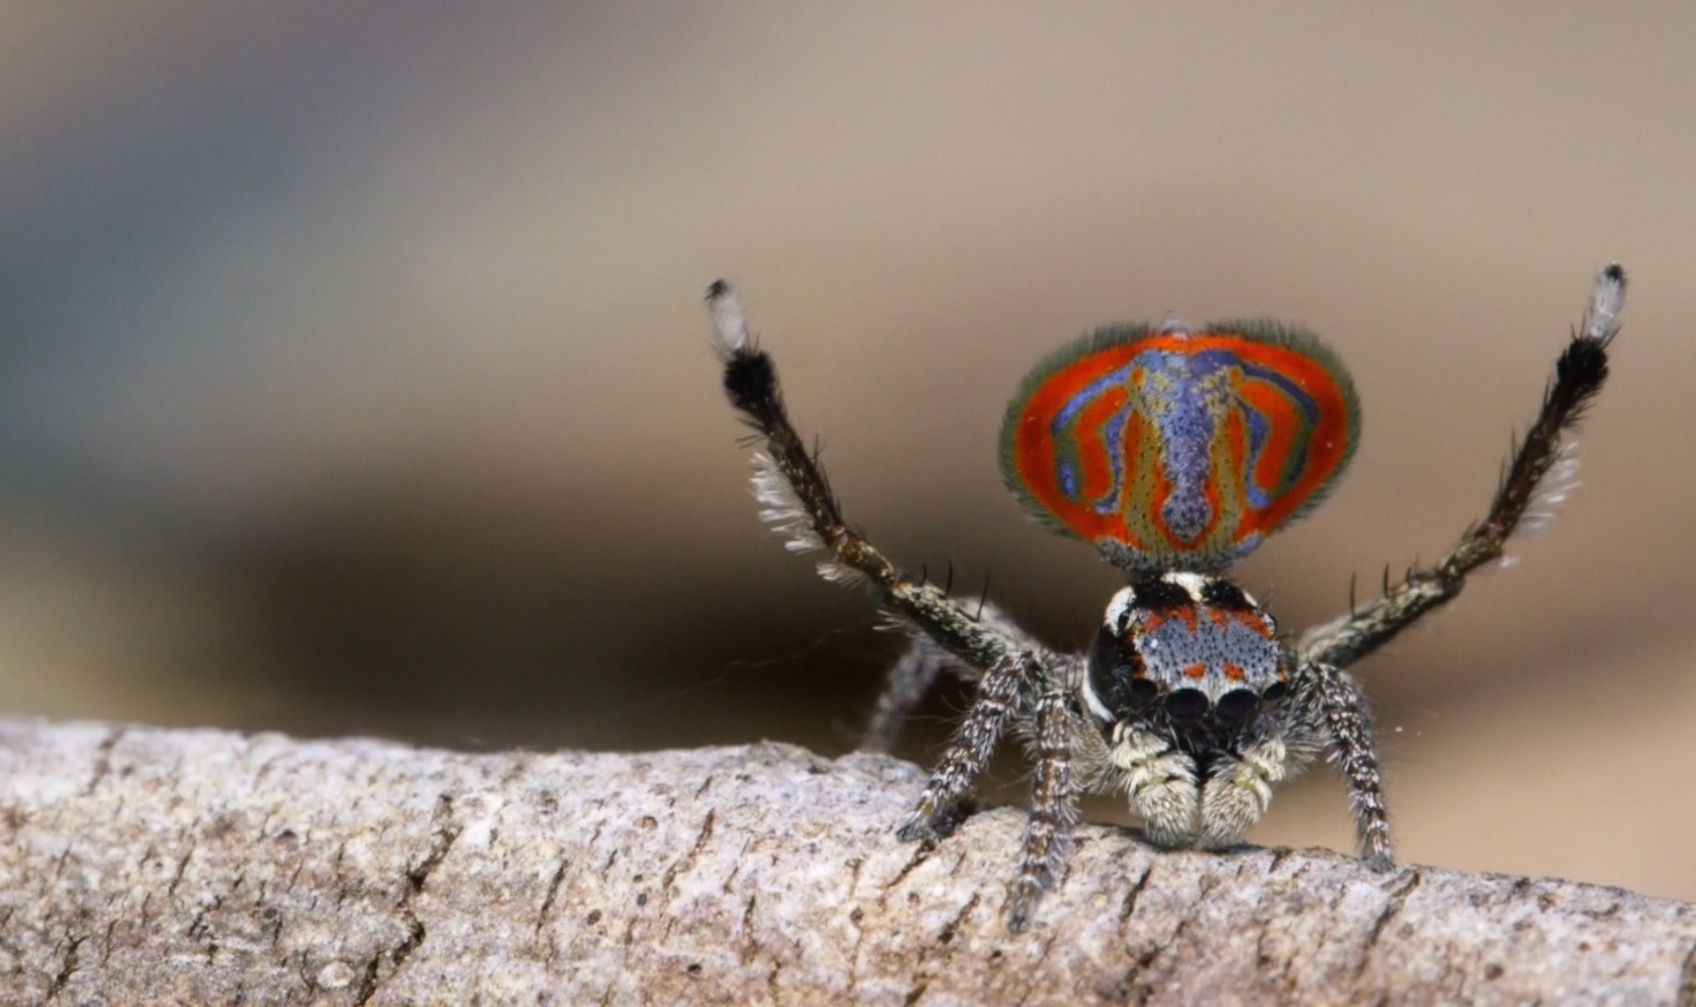 Behold Sparklemuffin and Skeletorus, New Peacock Spiders